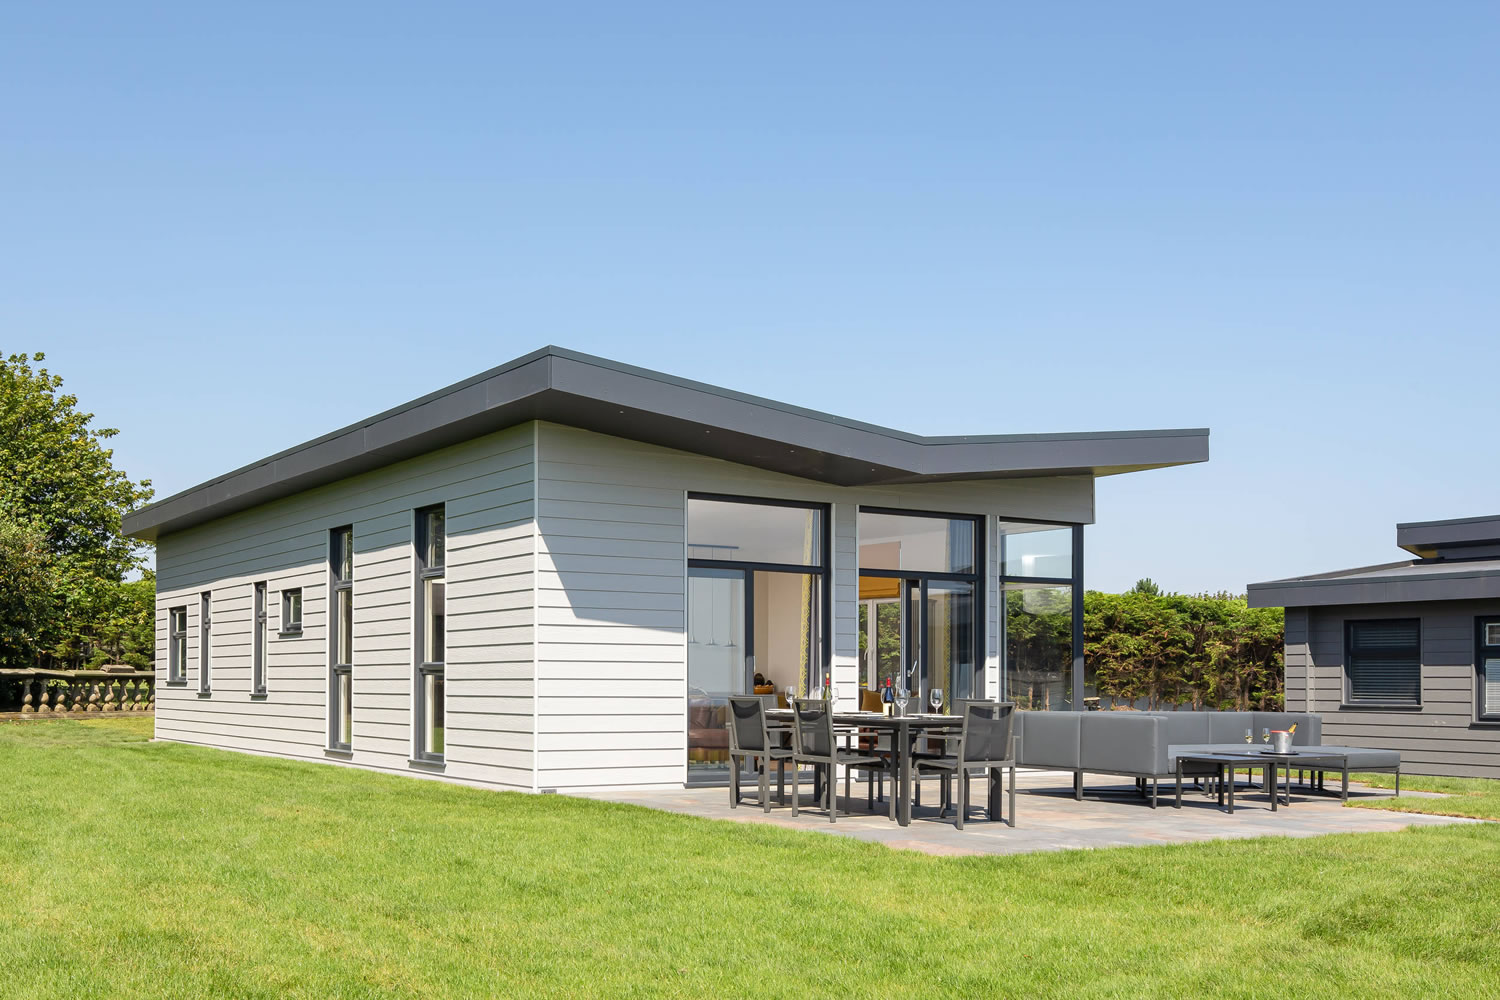 SIPS for Leisure buildings